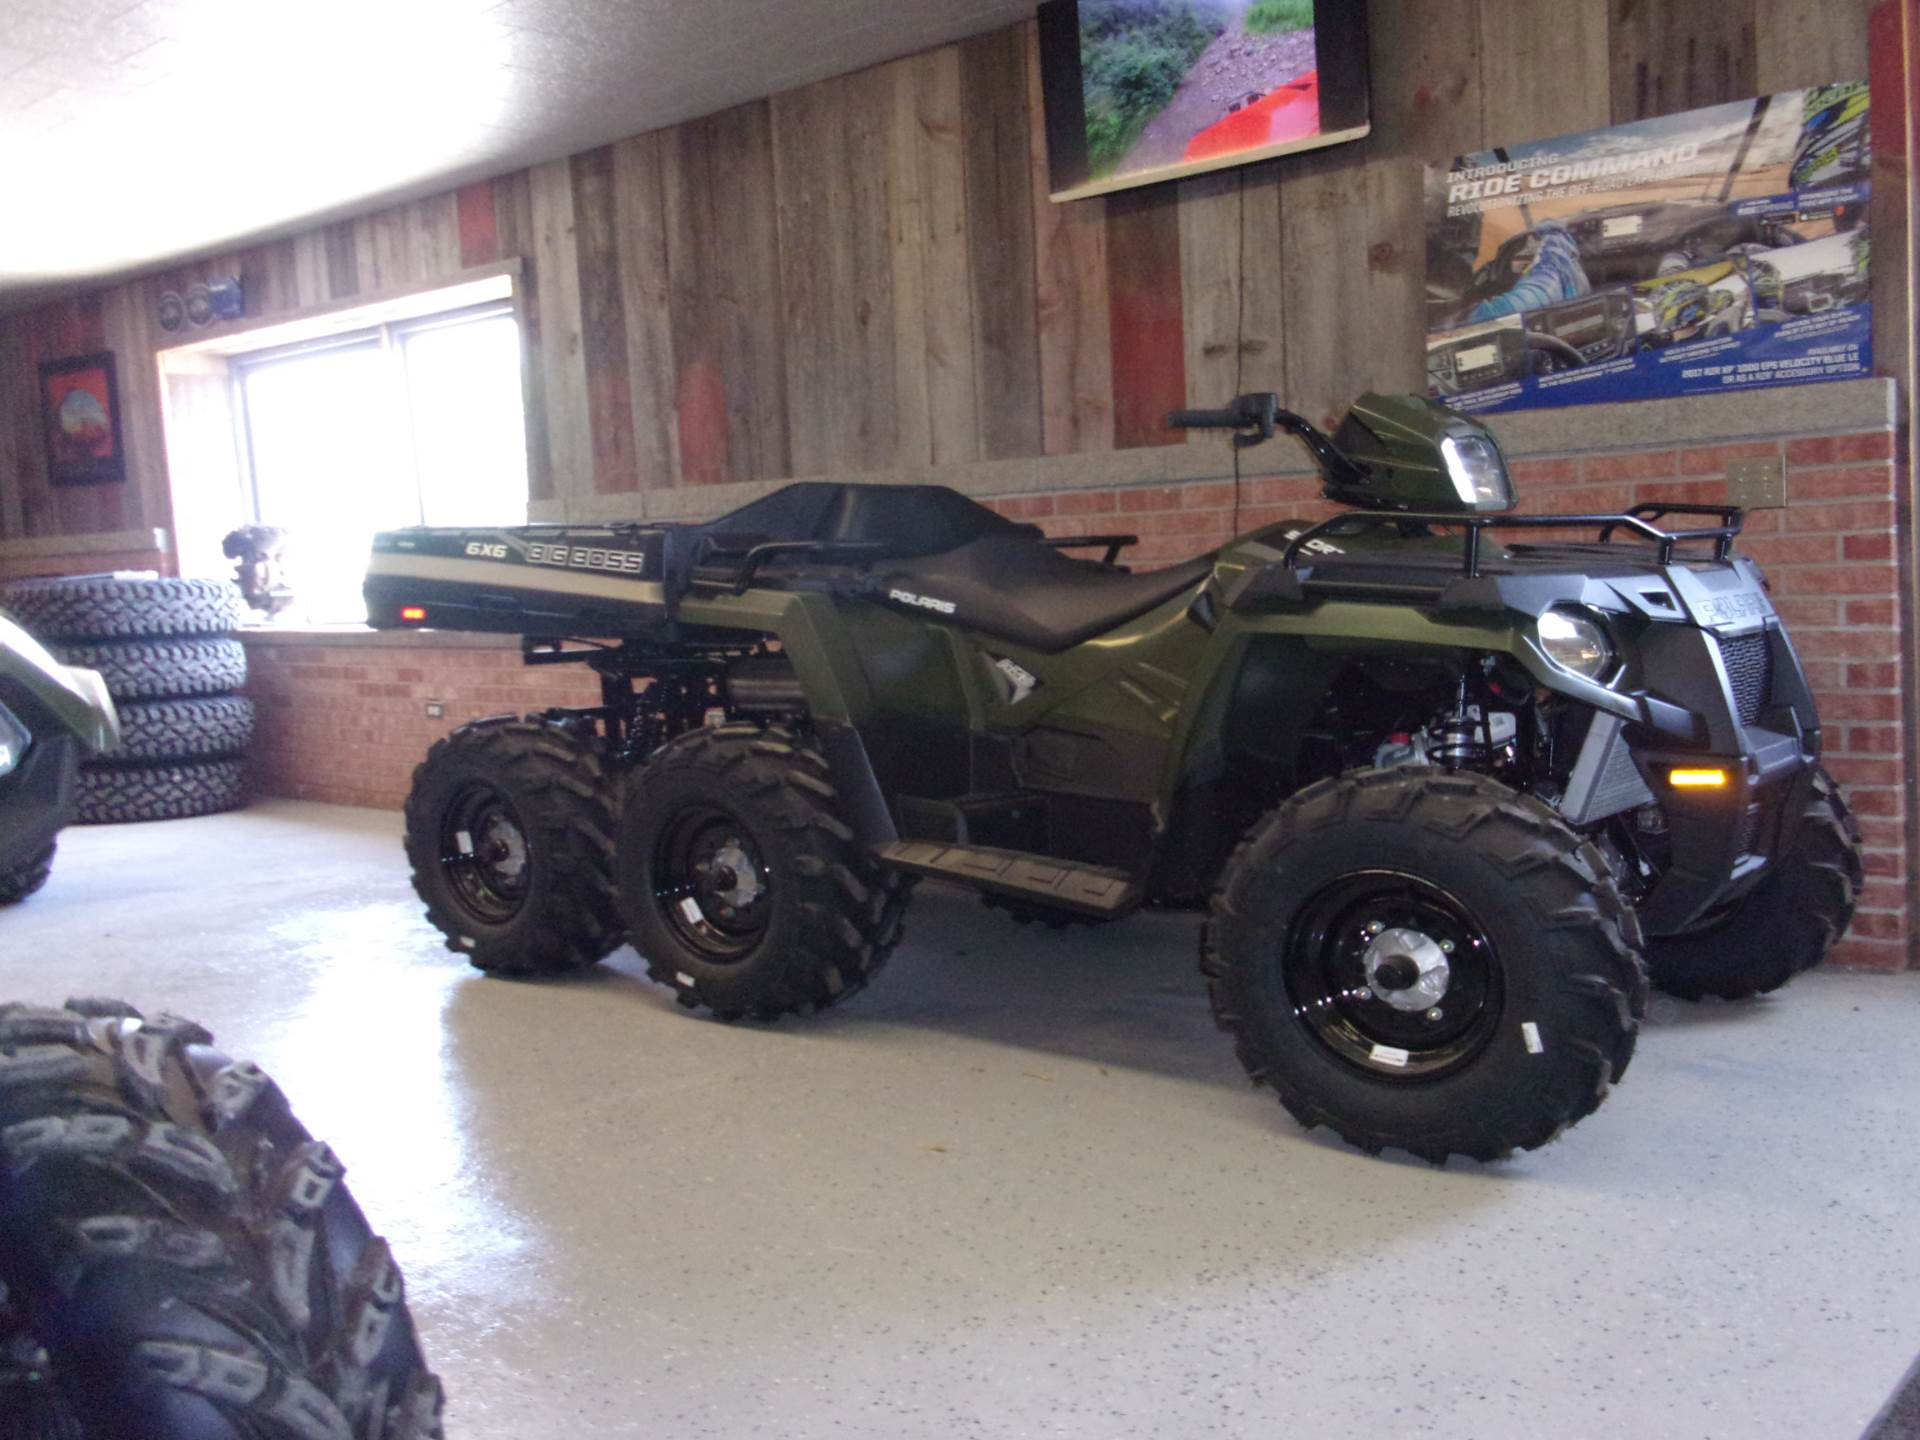 2019 Polaris Sportsman 6x6 570 in Houston, Ohio - Photo 1